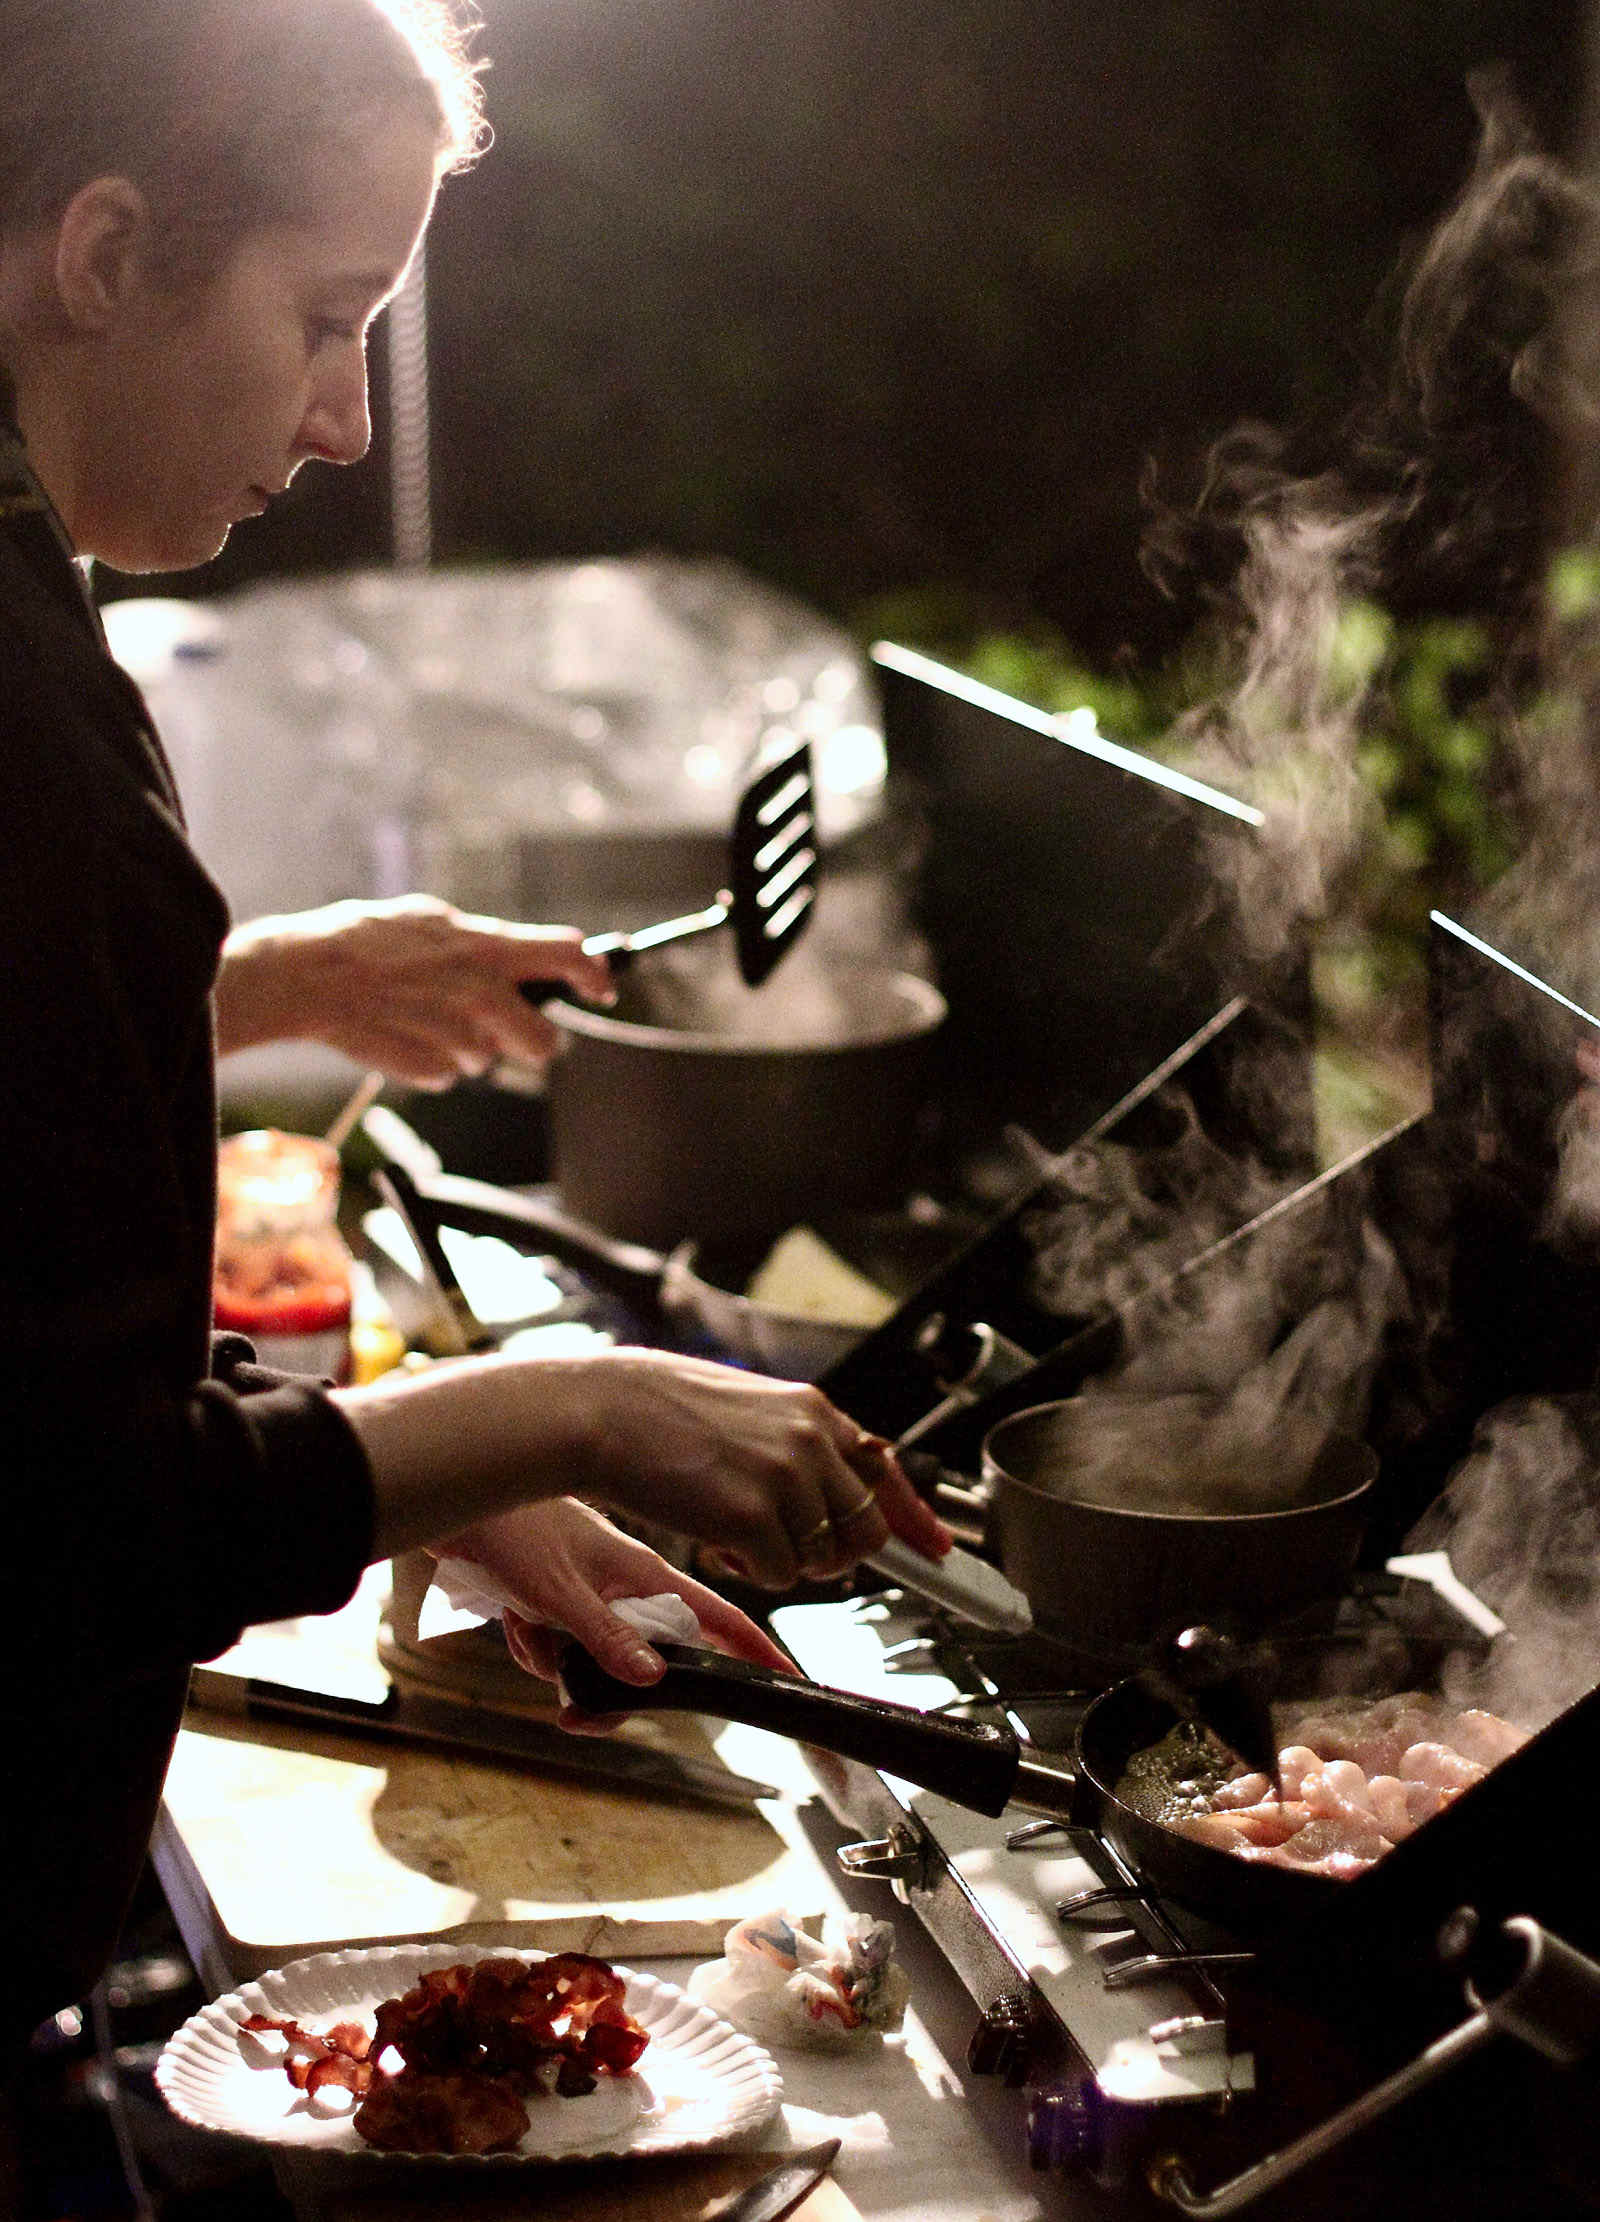 Volunteer Samantha Neakrase cooks breakfast at an aid station during the 2015 MMT 100